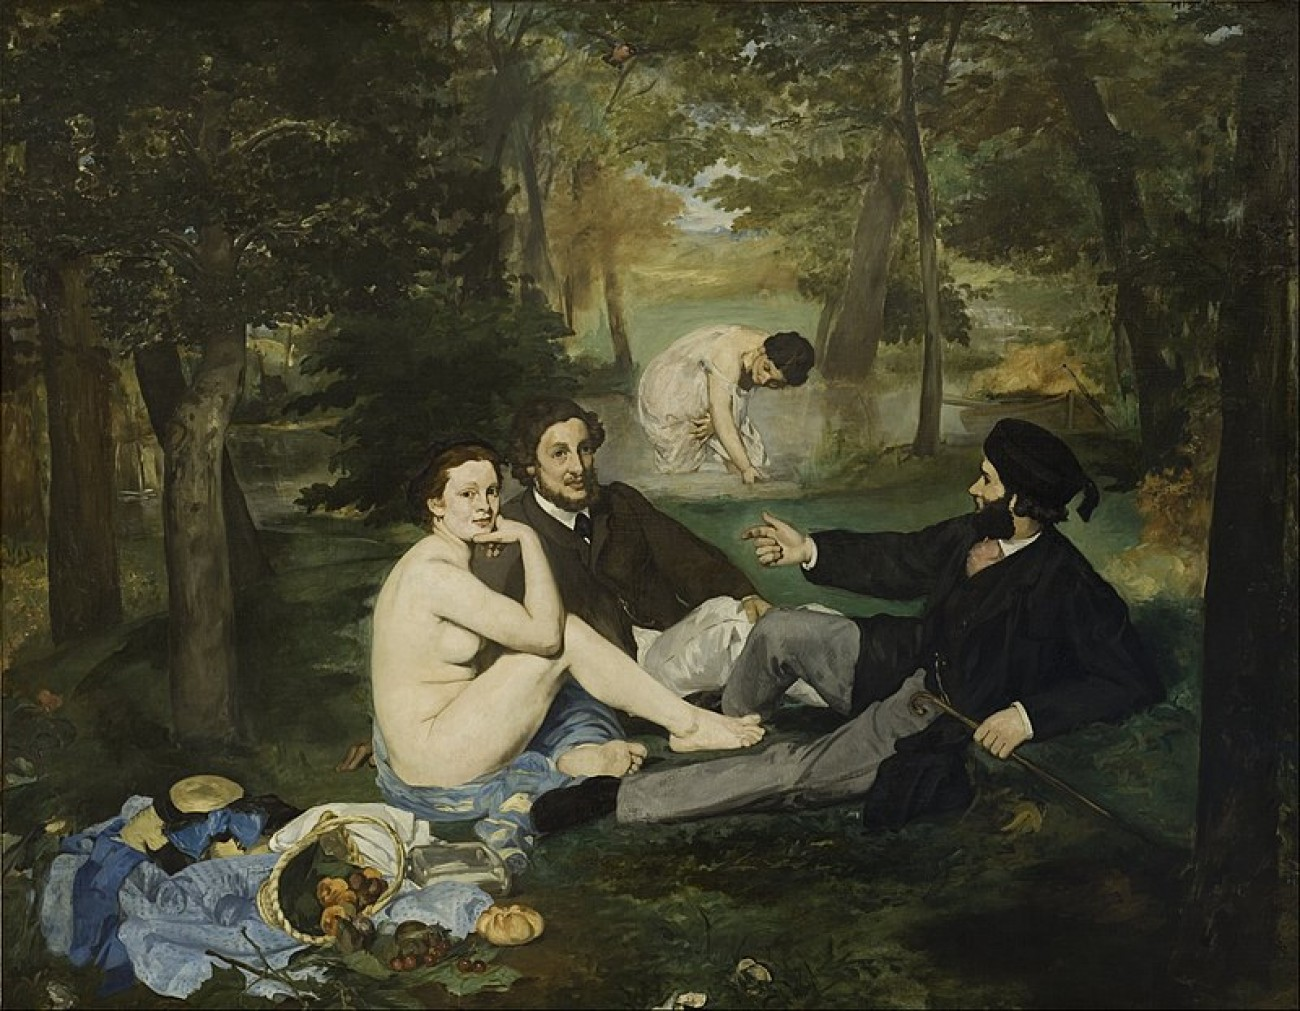 800px-Edouard Manet - Luncheon on the Grass - Google Art Project